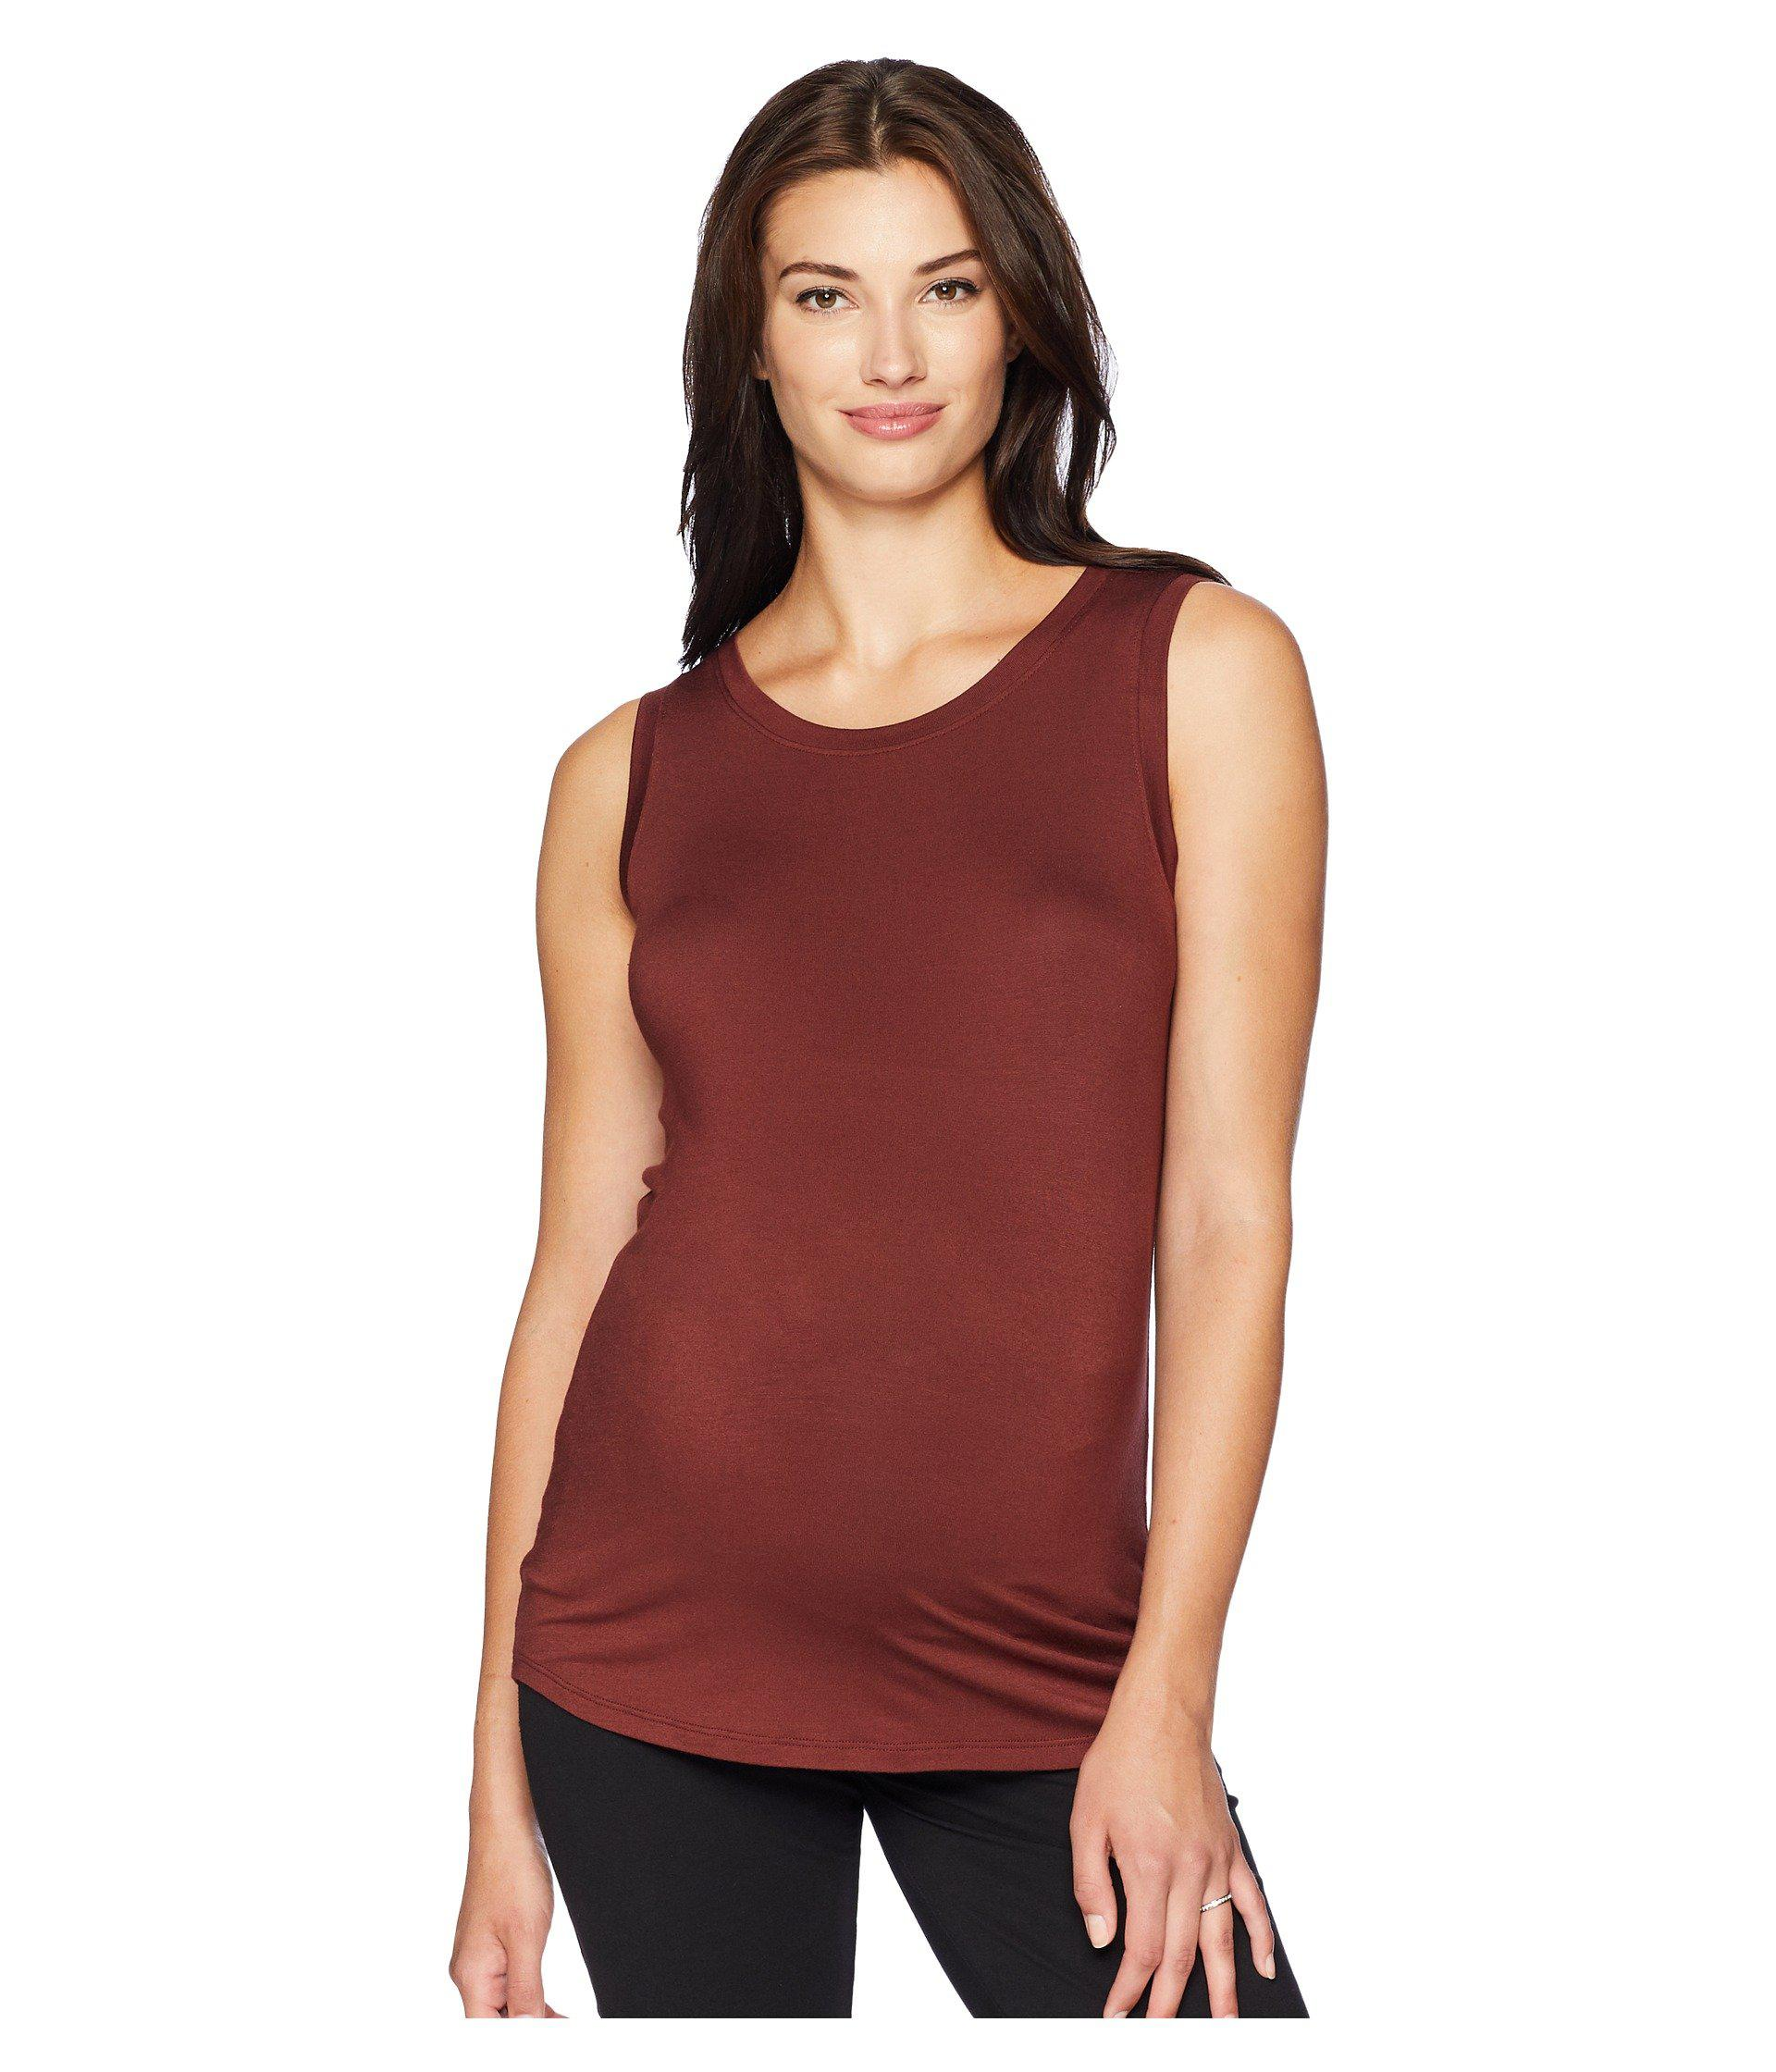 74db1443630d8 Beyond Yoga. Red Maternity Balanced Muscle Tank Top (black) Women's  Sleeveless